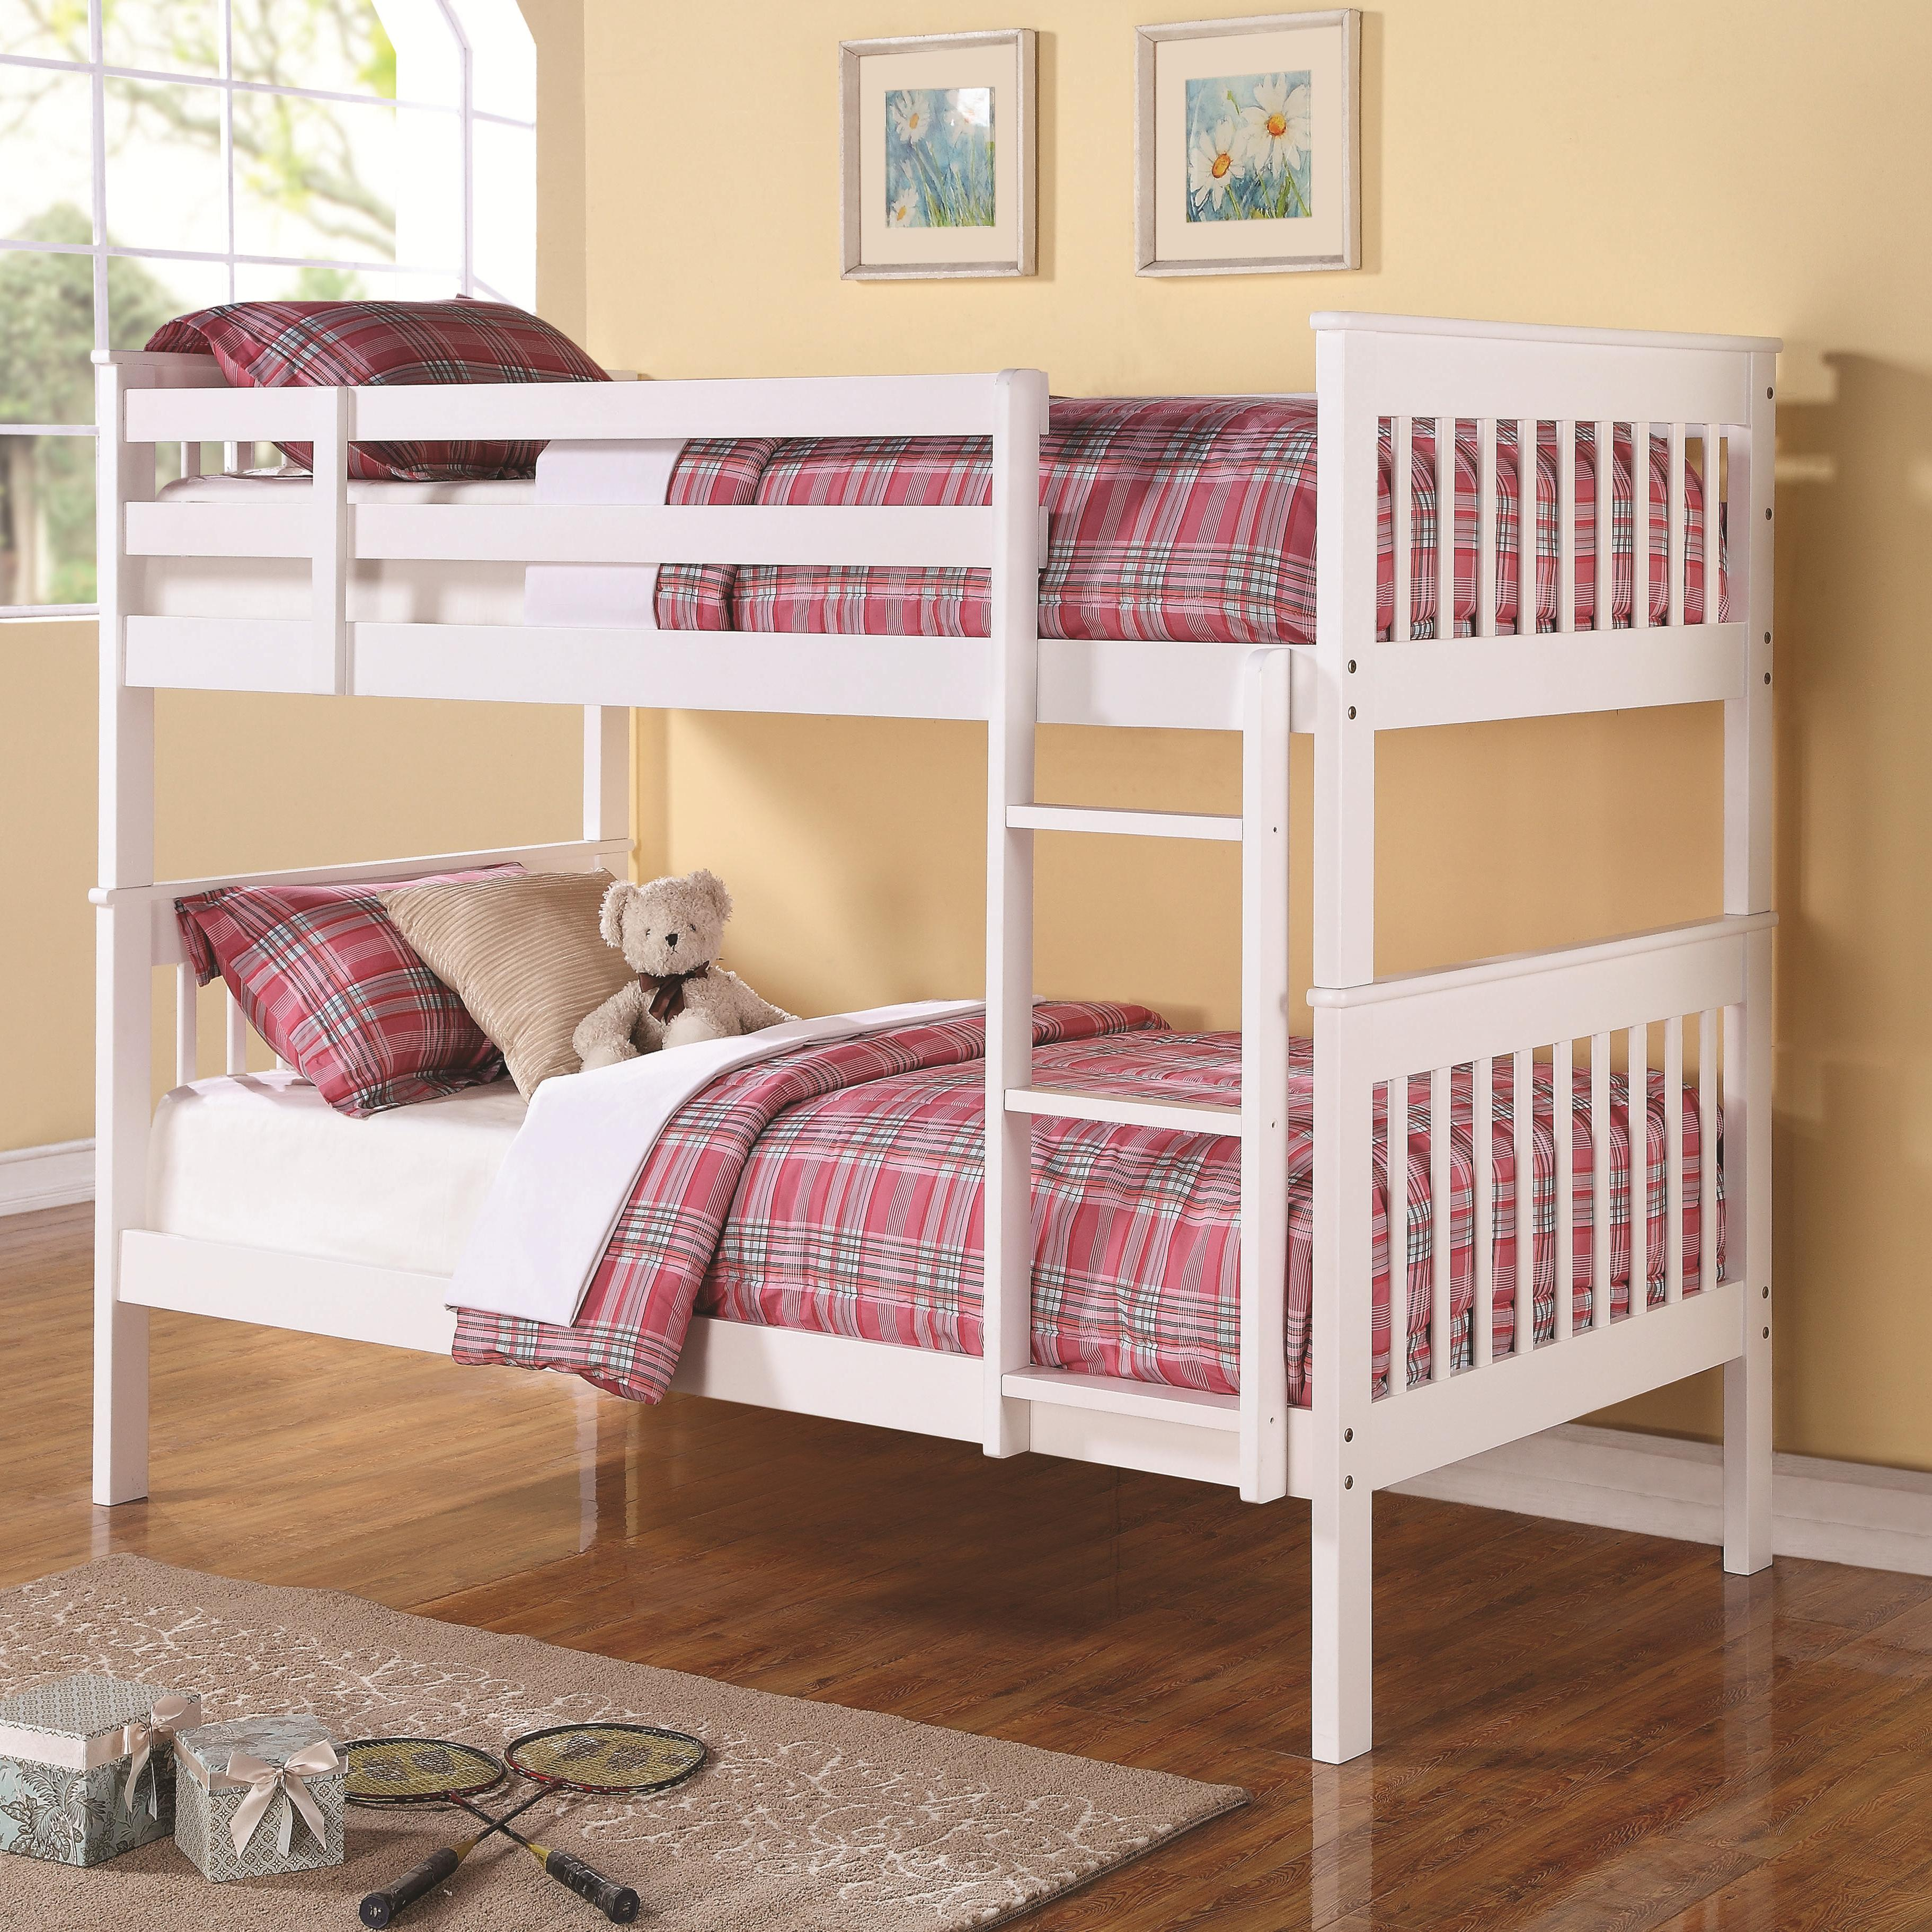 Coaster Bunks Twin Over Twin Bunk Bed - Item Number: 460244